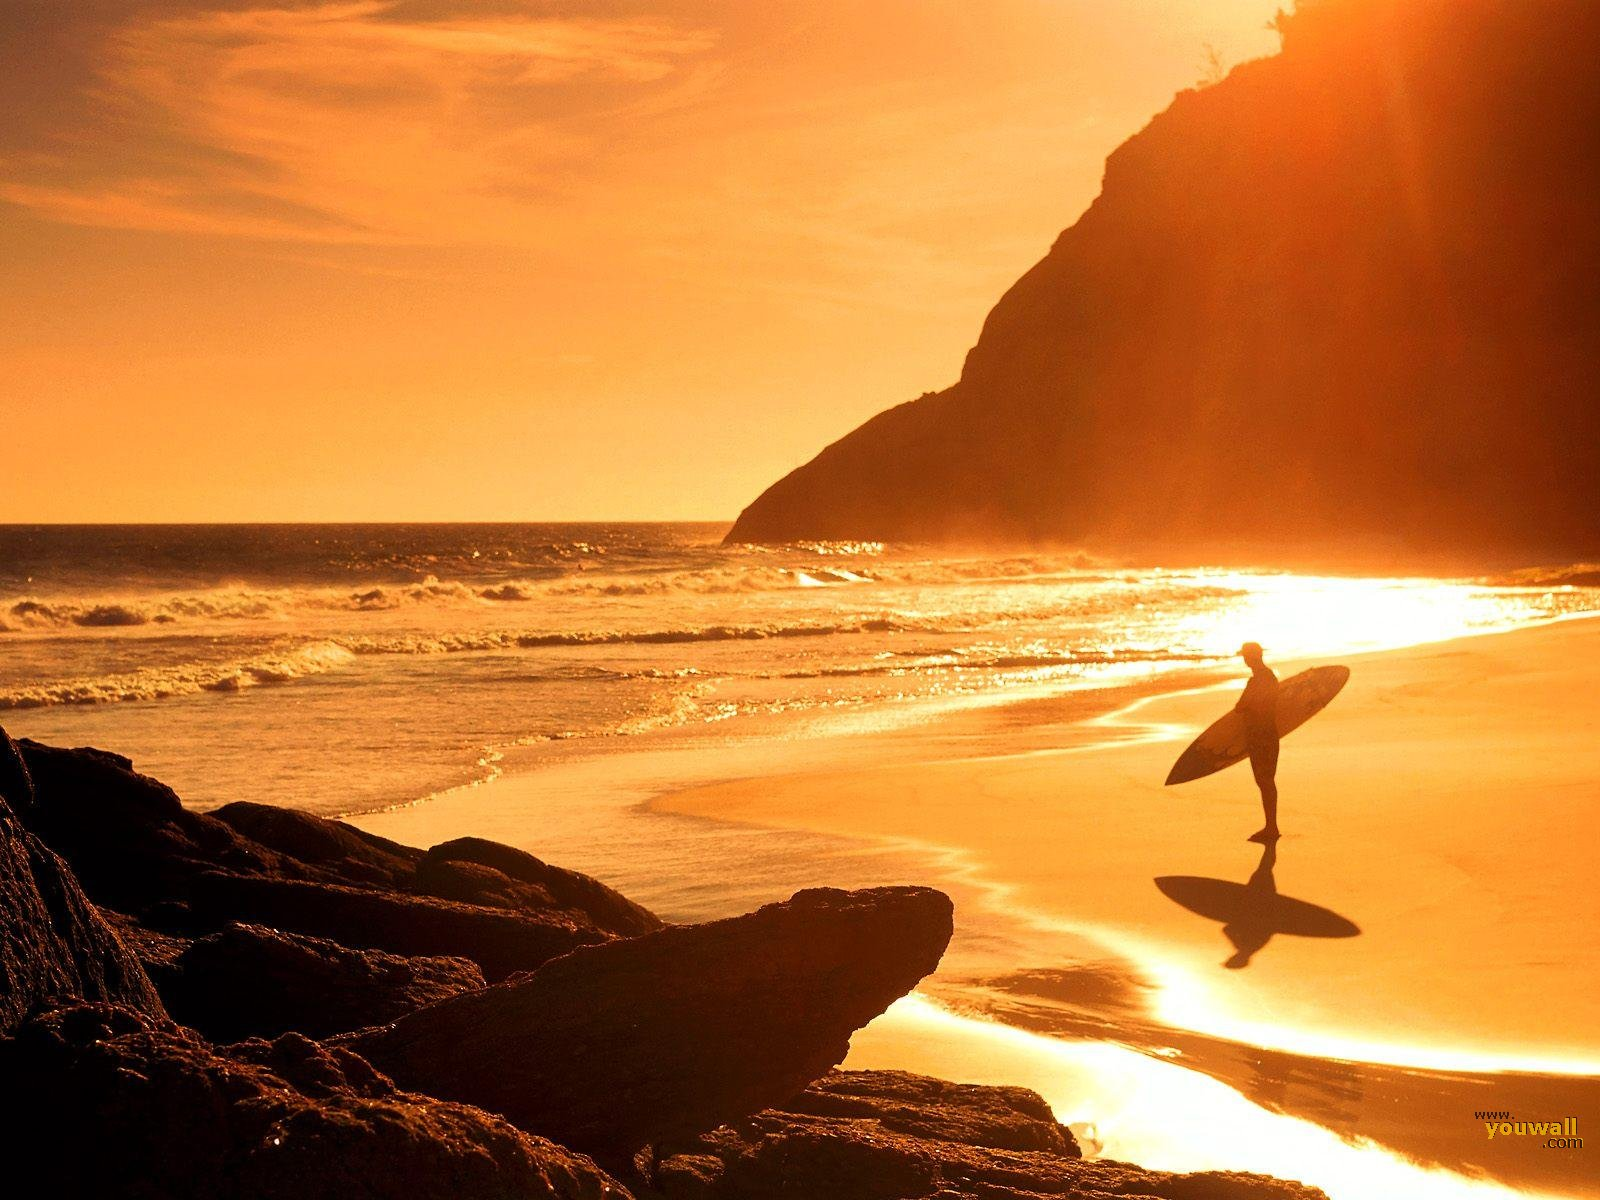 Surf backgrounds Desktop Wallpaper High Quality WallpapersWallpaper 1600x1200